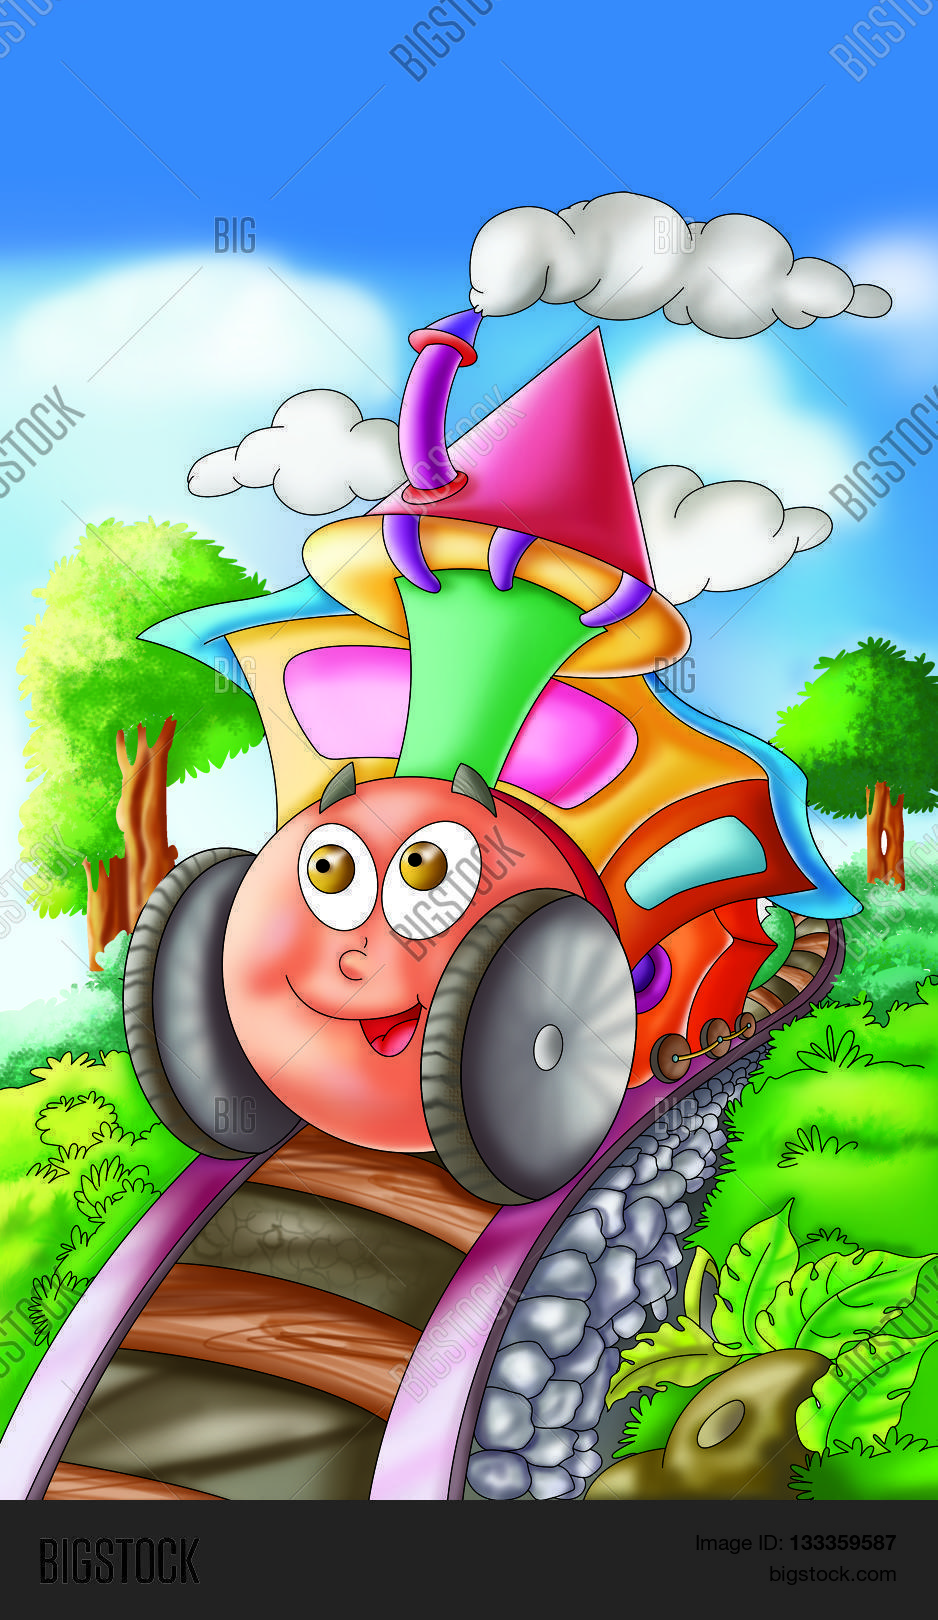 engine rhyme kids give image photo free trial bigstock